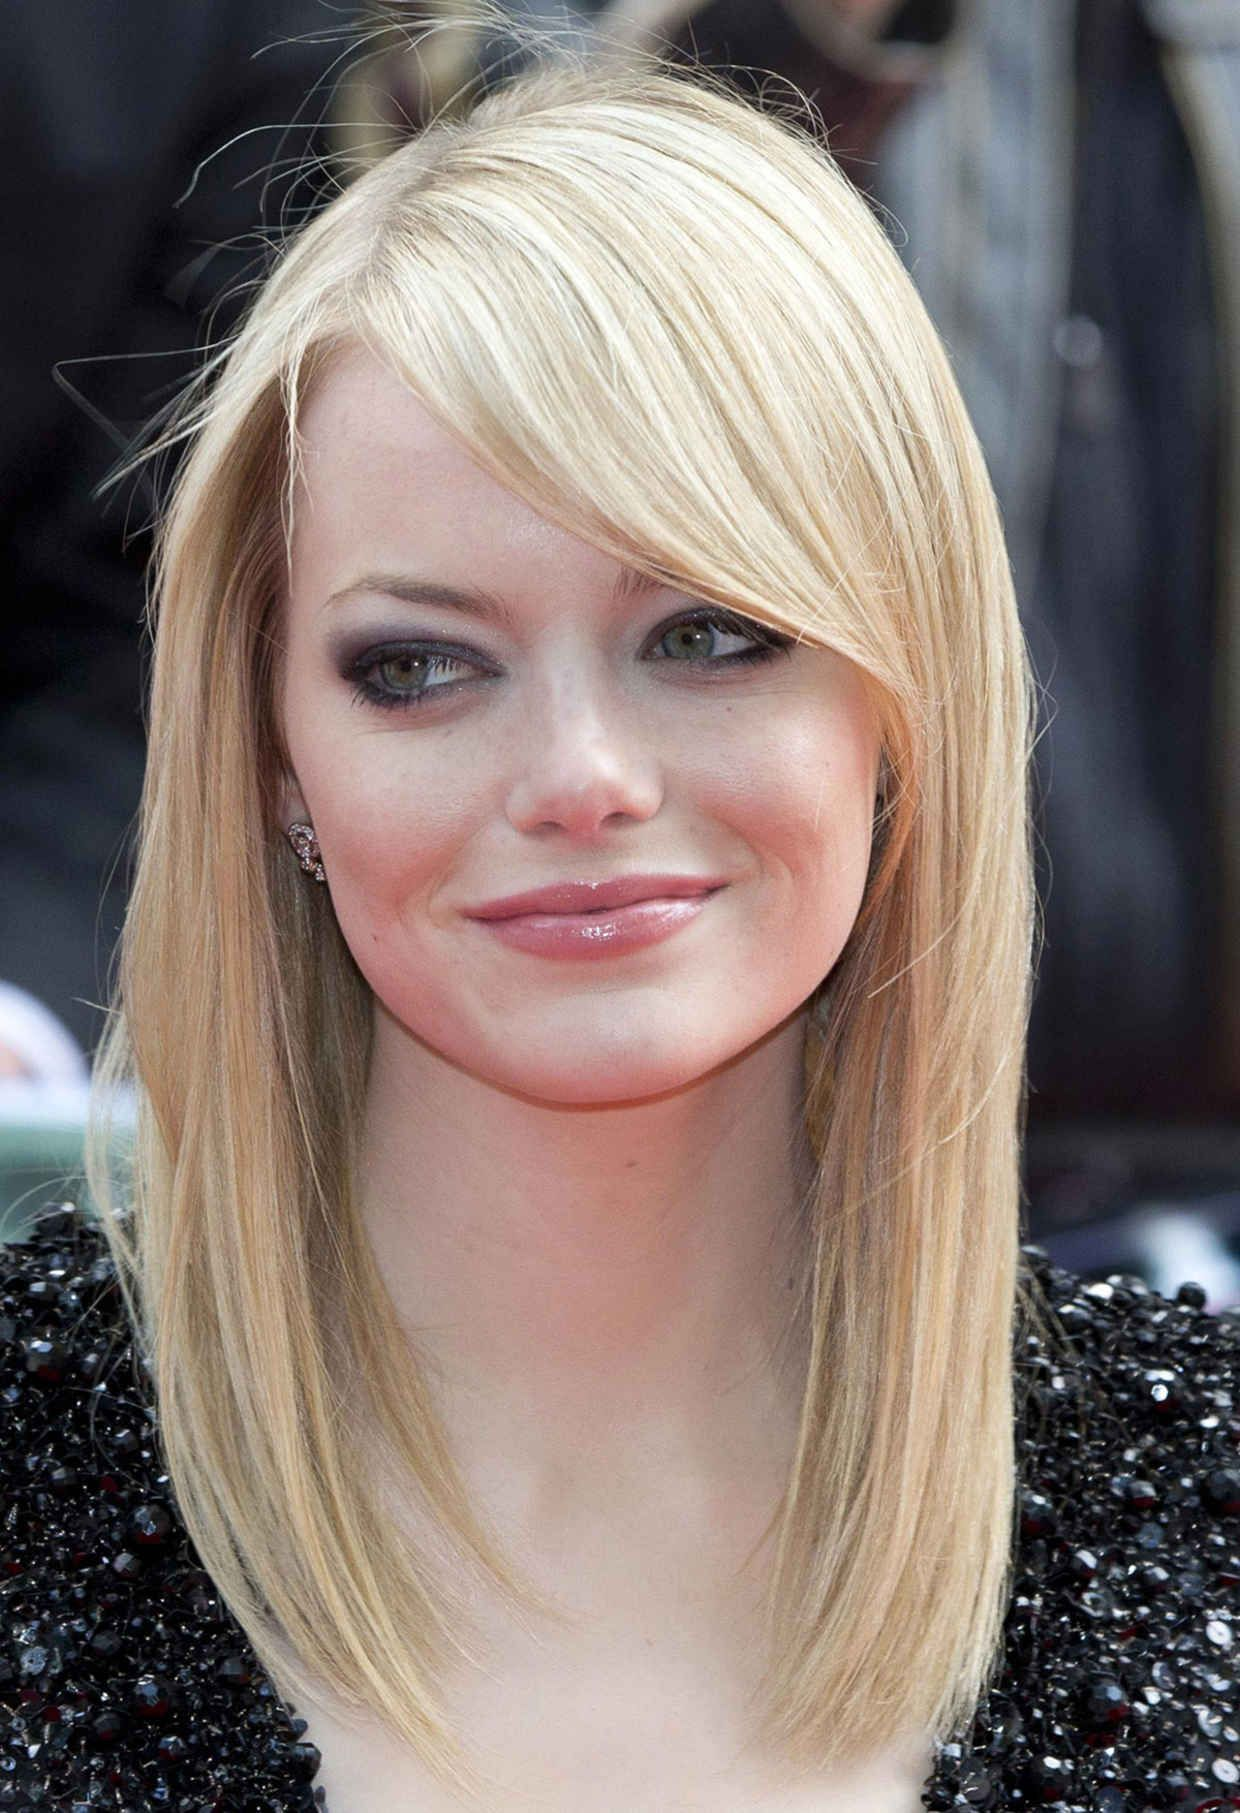 How To Grow Out A Bad Haircut Pinterest Amazing Spider Haircuts